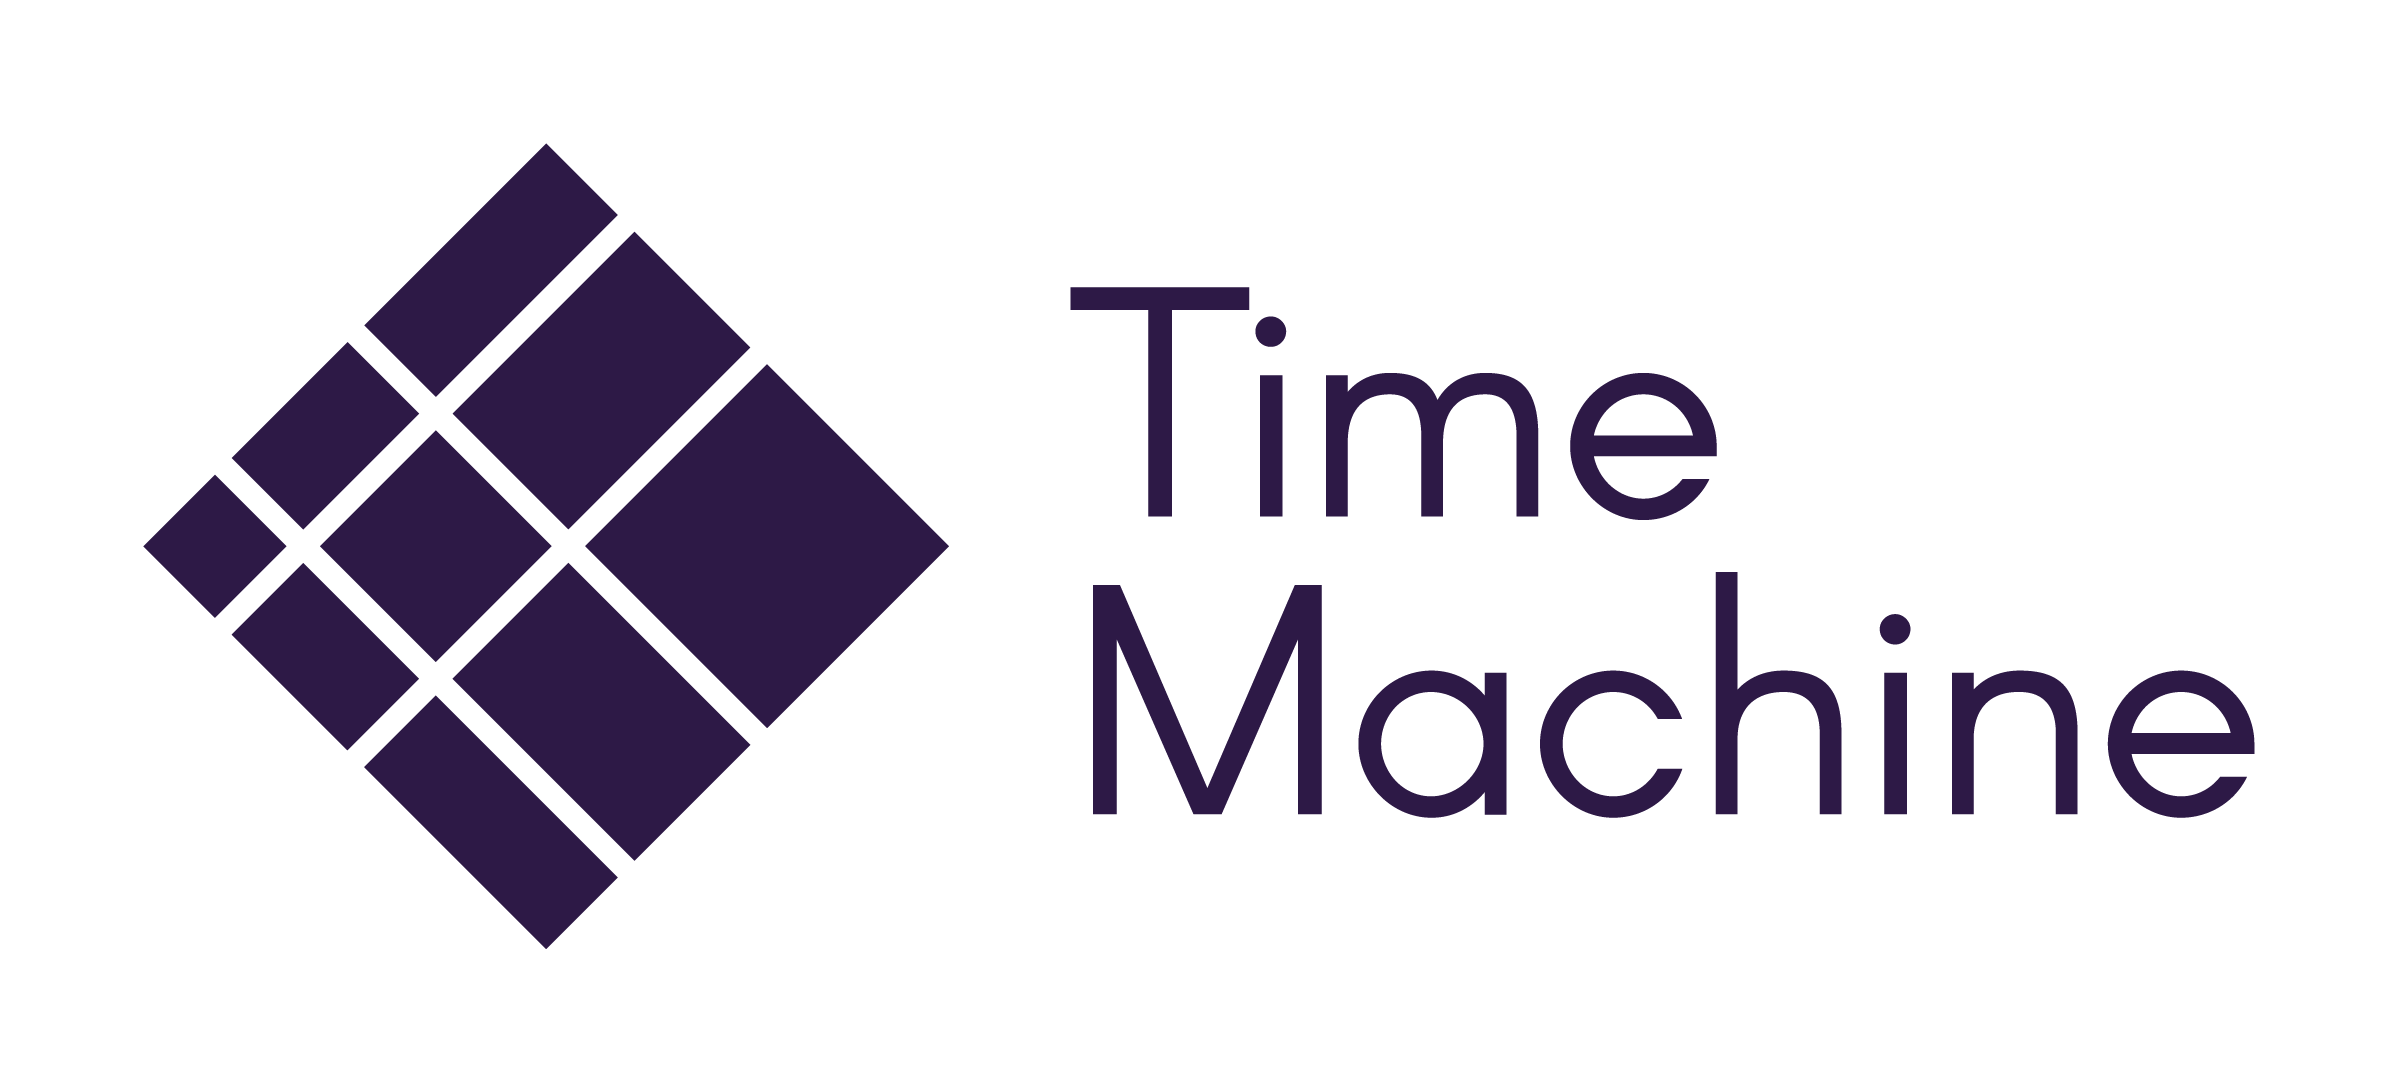 Time Machine Organisation - Organisation for international cooperation in science, technology and cultural heritage